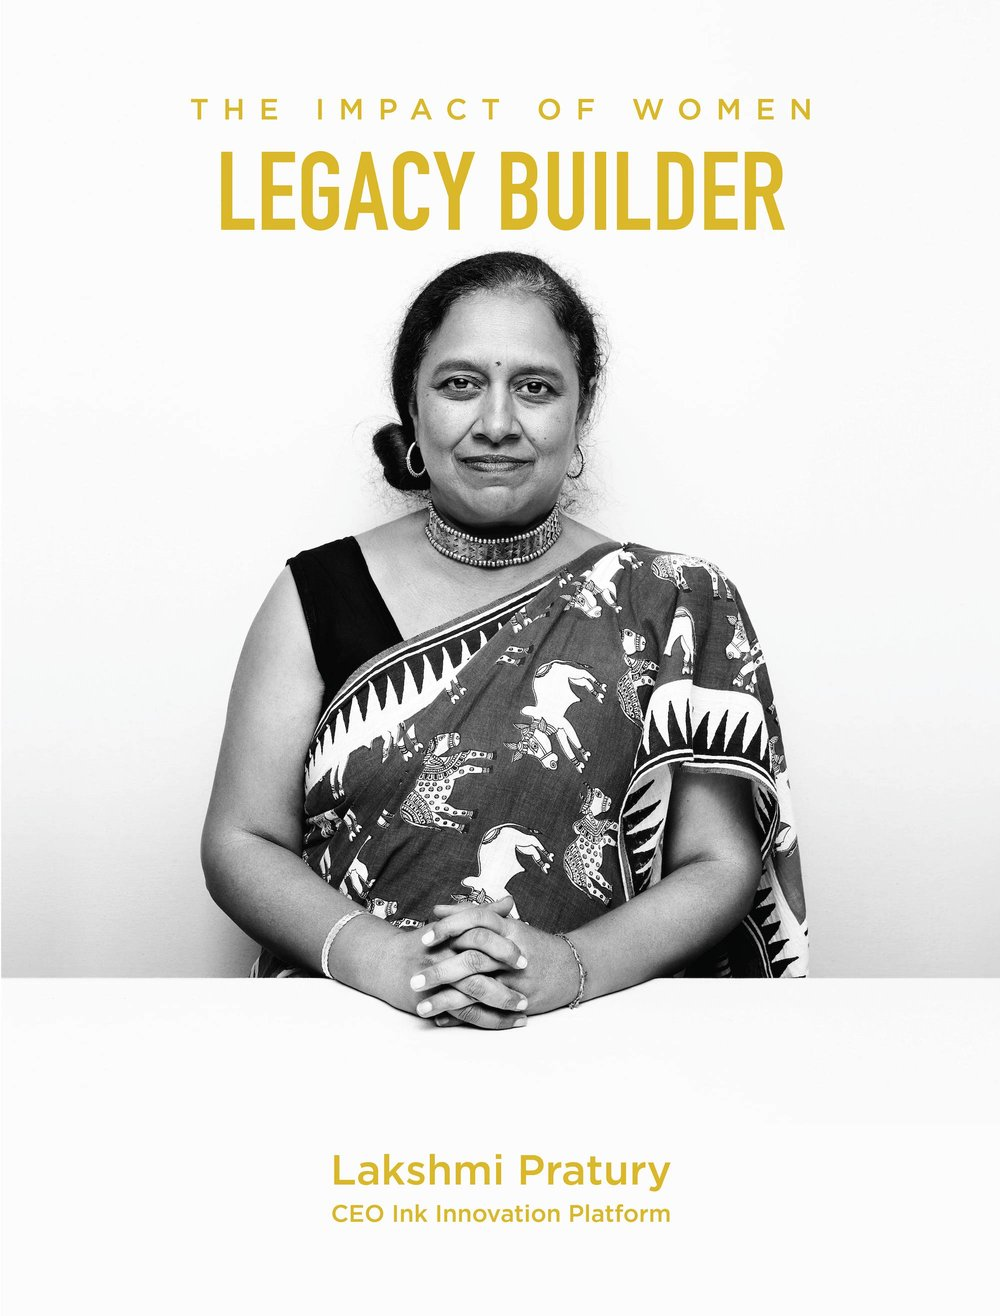 Lakshmi Pratury is a Legacy Builder